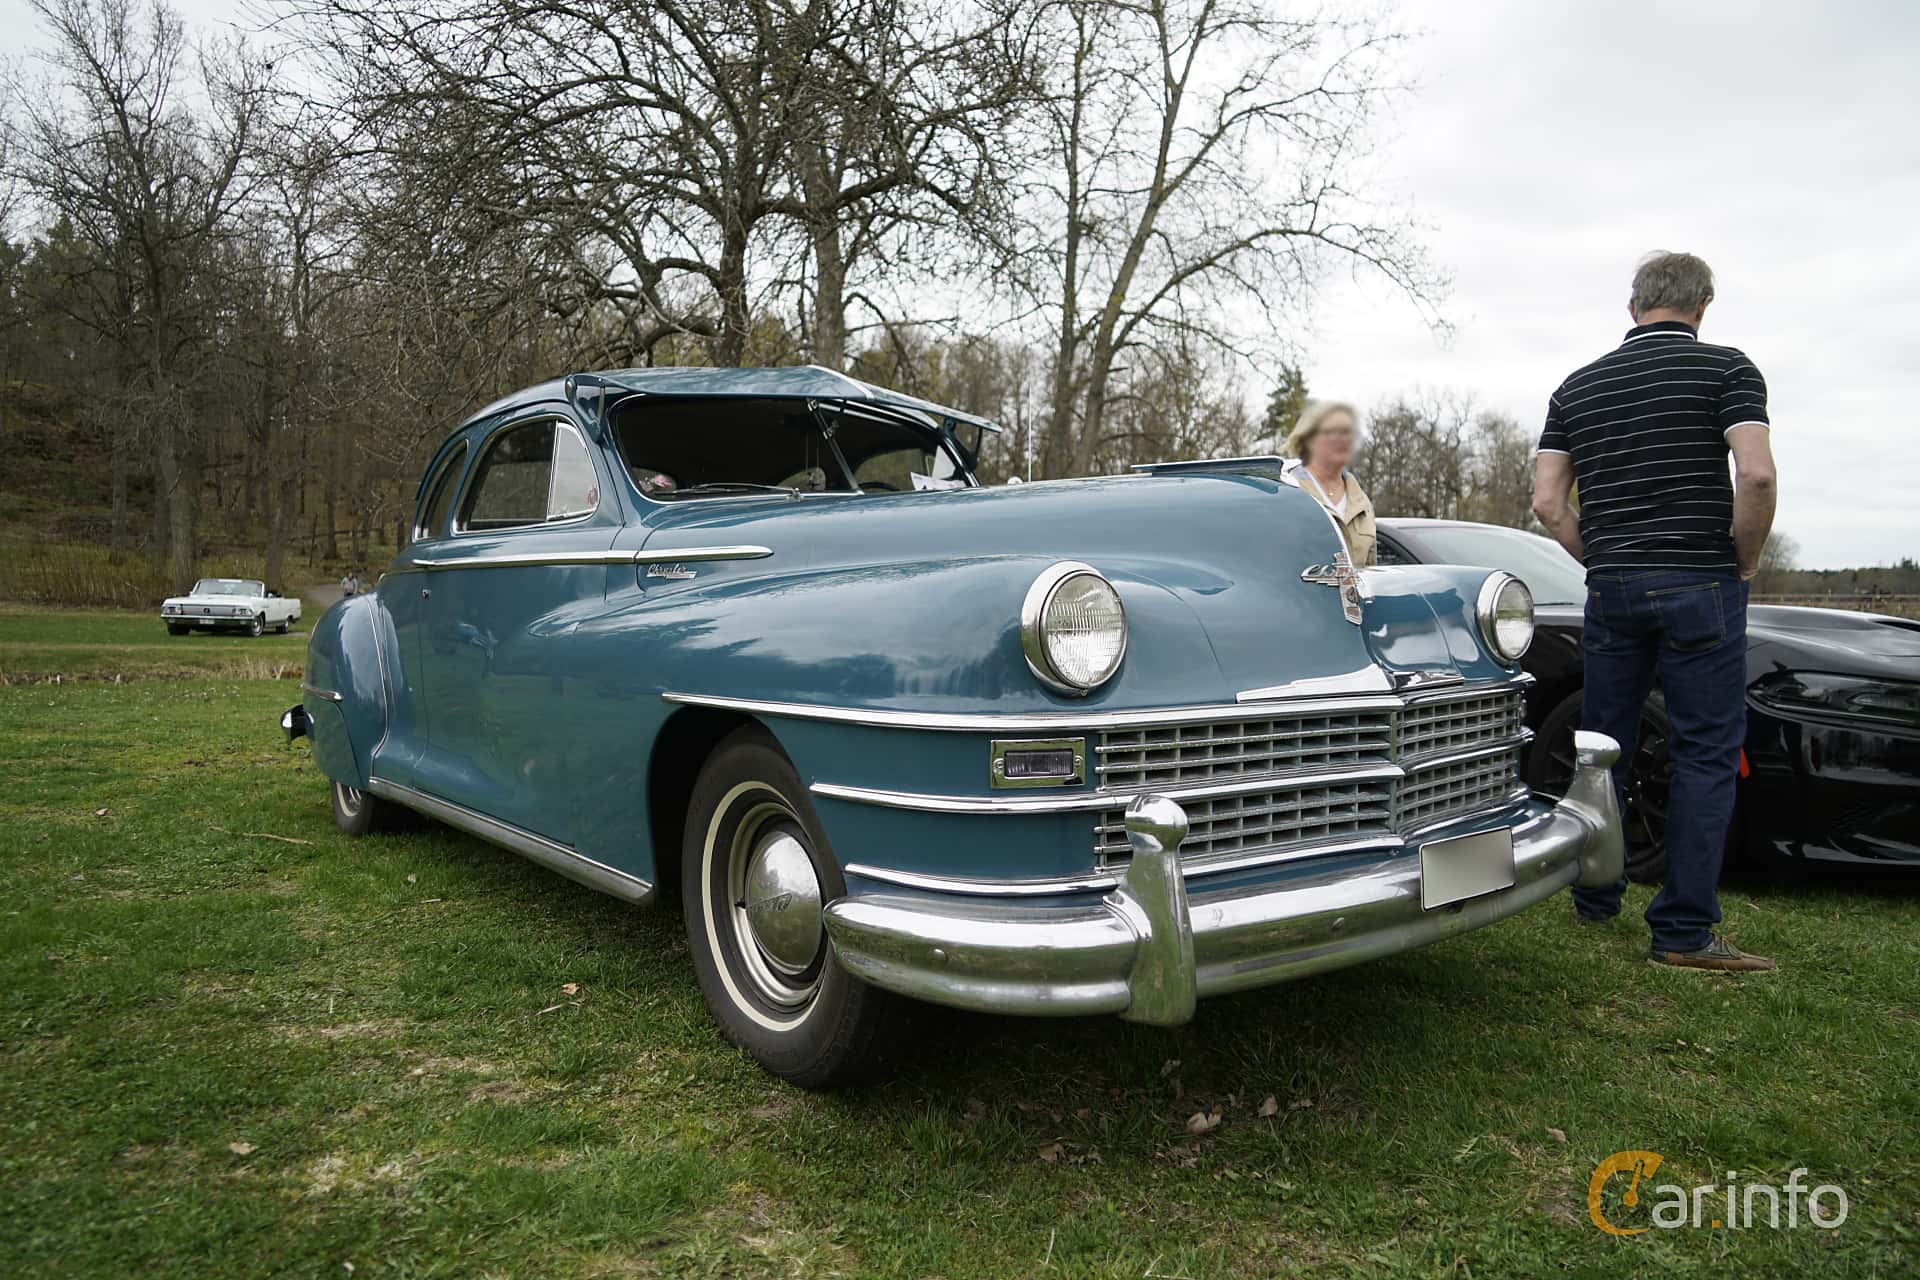 chrysler-windsor-club-coupe-front-side-classic-cars -spring-meet-2017-1-369973.jpg